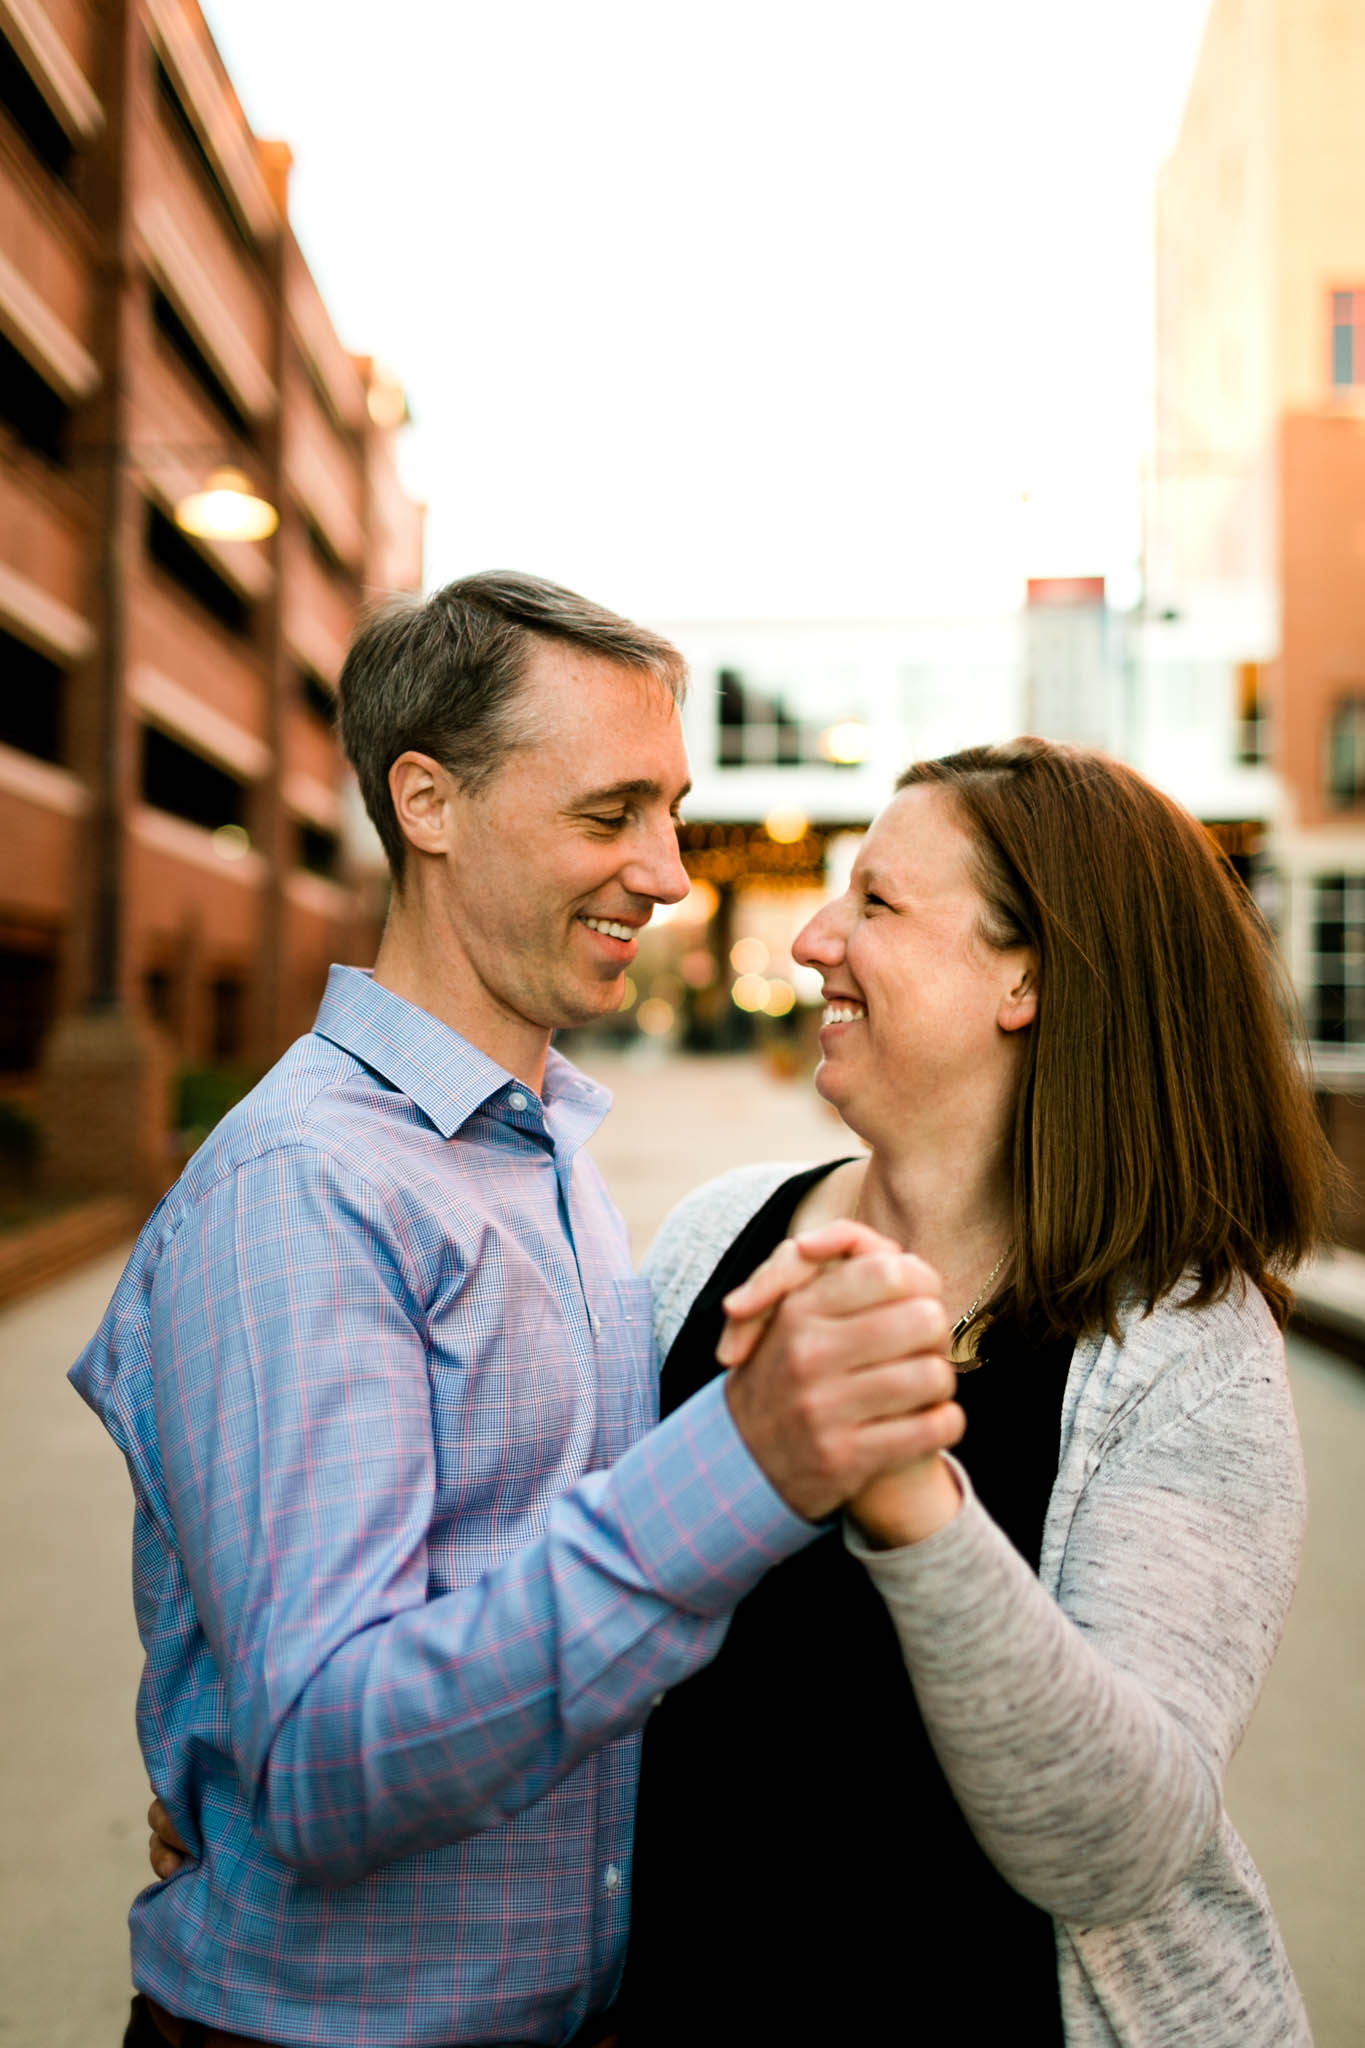 Couple smiling and dancing at American Tobacco Campus | Durham Family Photographer | By G. Lin Photography